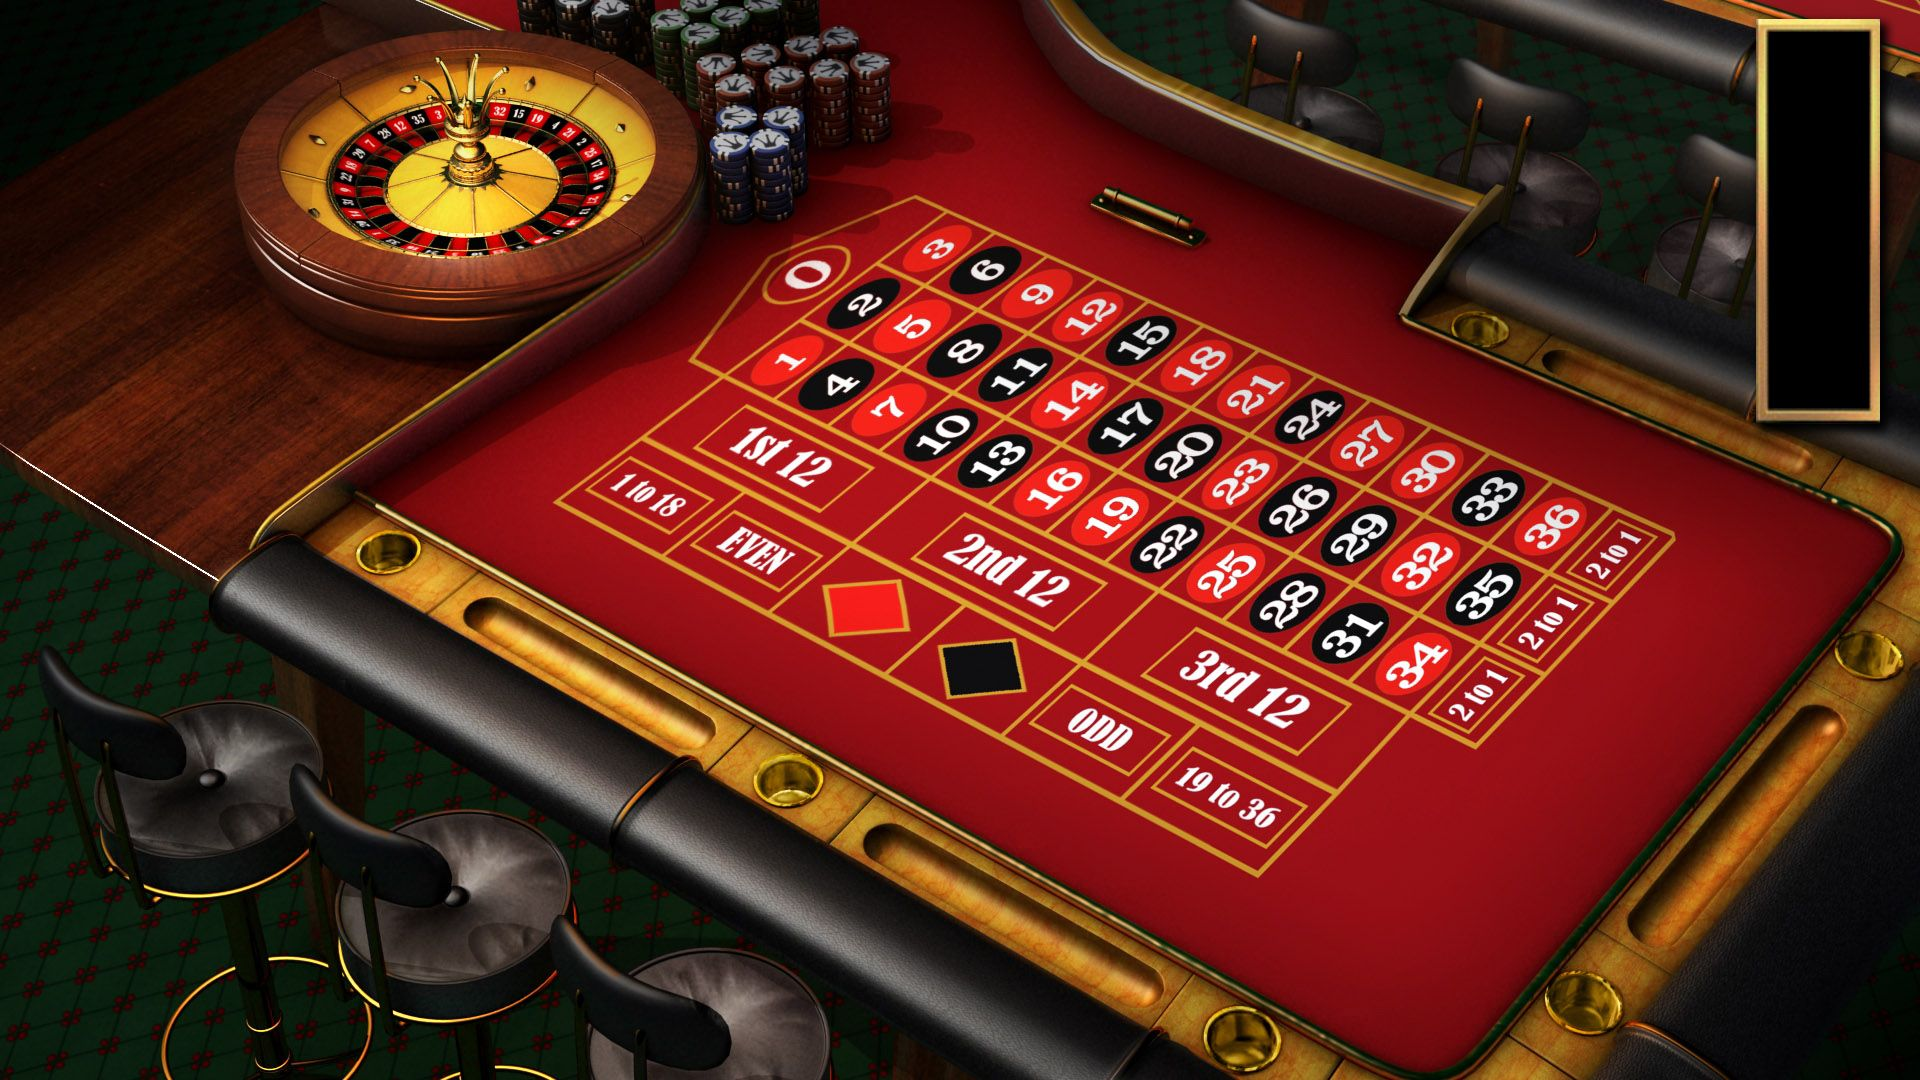 A guide to play poker through internet